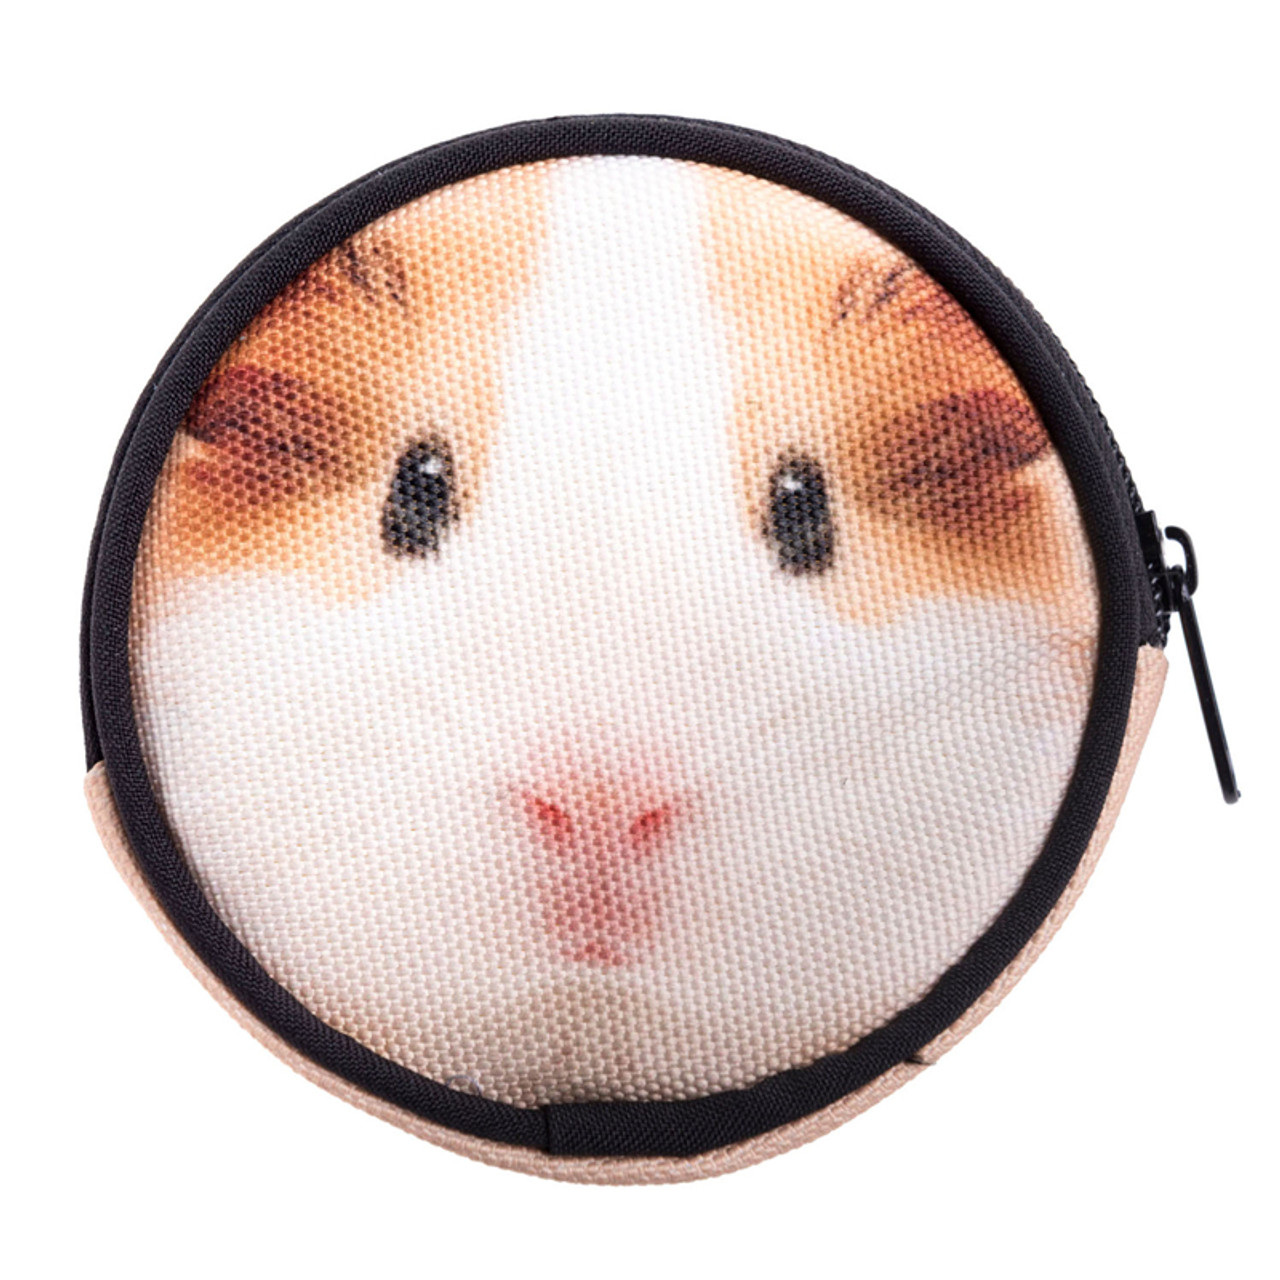 Guinea Pig Round Graphic Print Coin Purse - 18 Styles